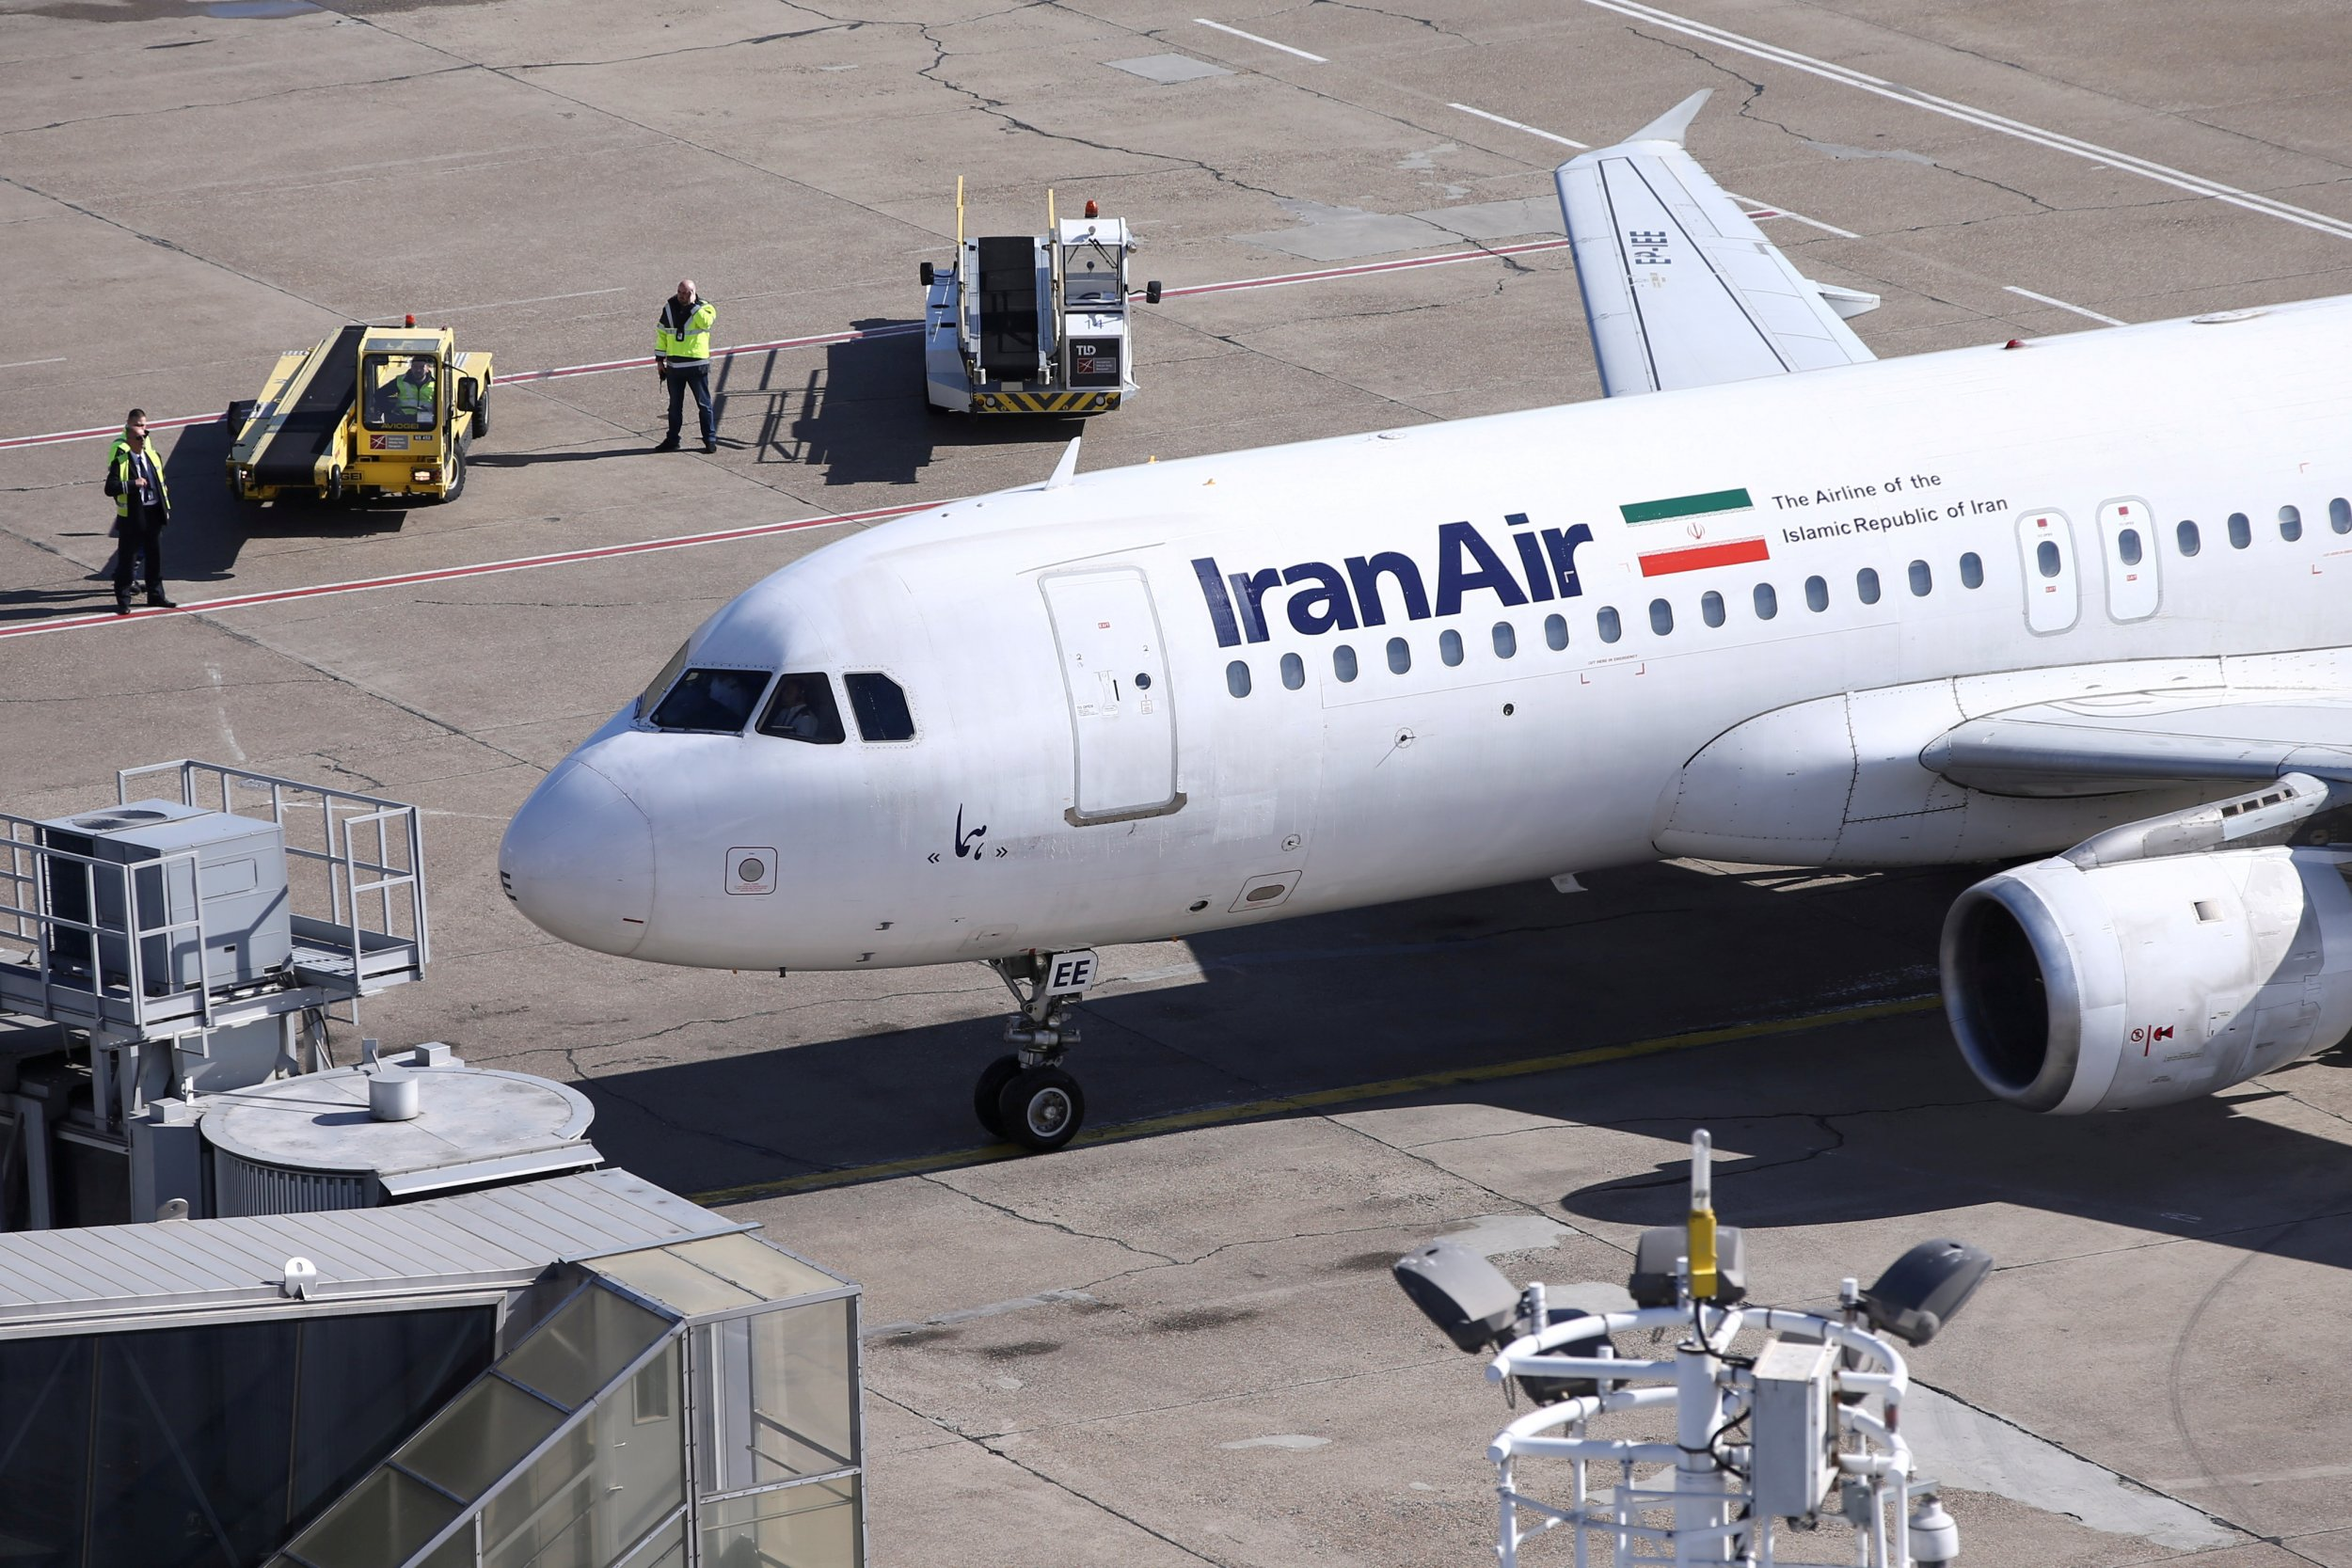 Boeing Could Lose Nearly 20 Billion After Iran Nuclear